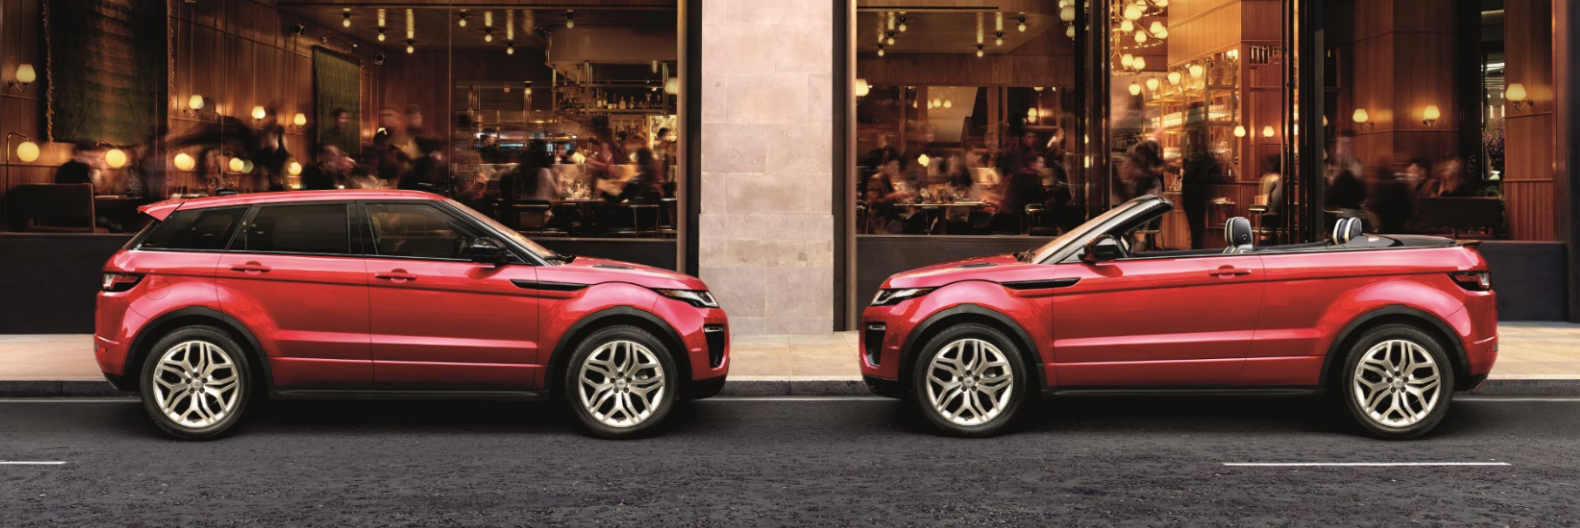 Range Rover Evoque 5 Door/Convertible